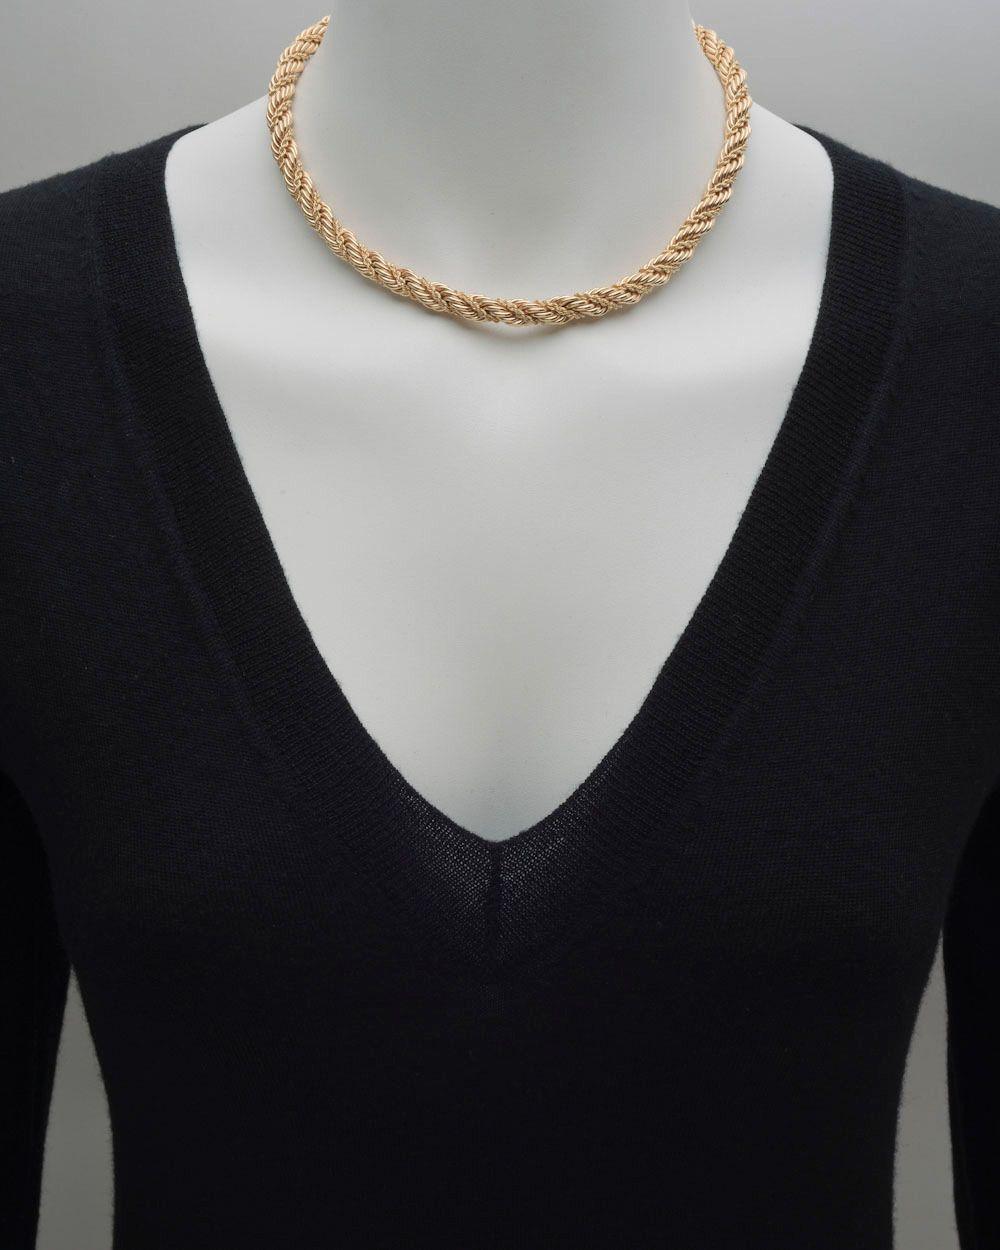 Tiffany & Co. Gold Woven Rope-Twist Necklace | From a unique collection of vintage rope necklaces at https://www.1stdibs.com/jewelry/necklaces/rope-necklaces/